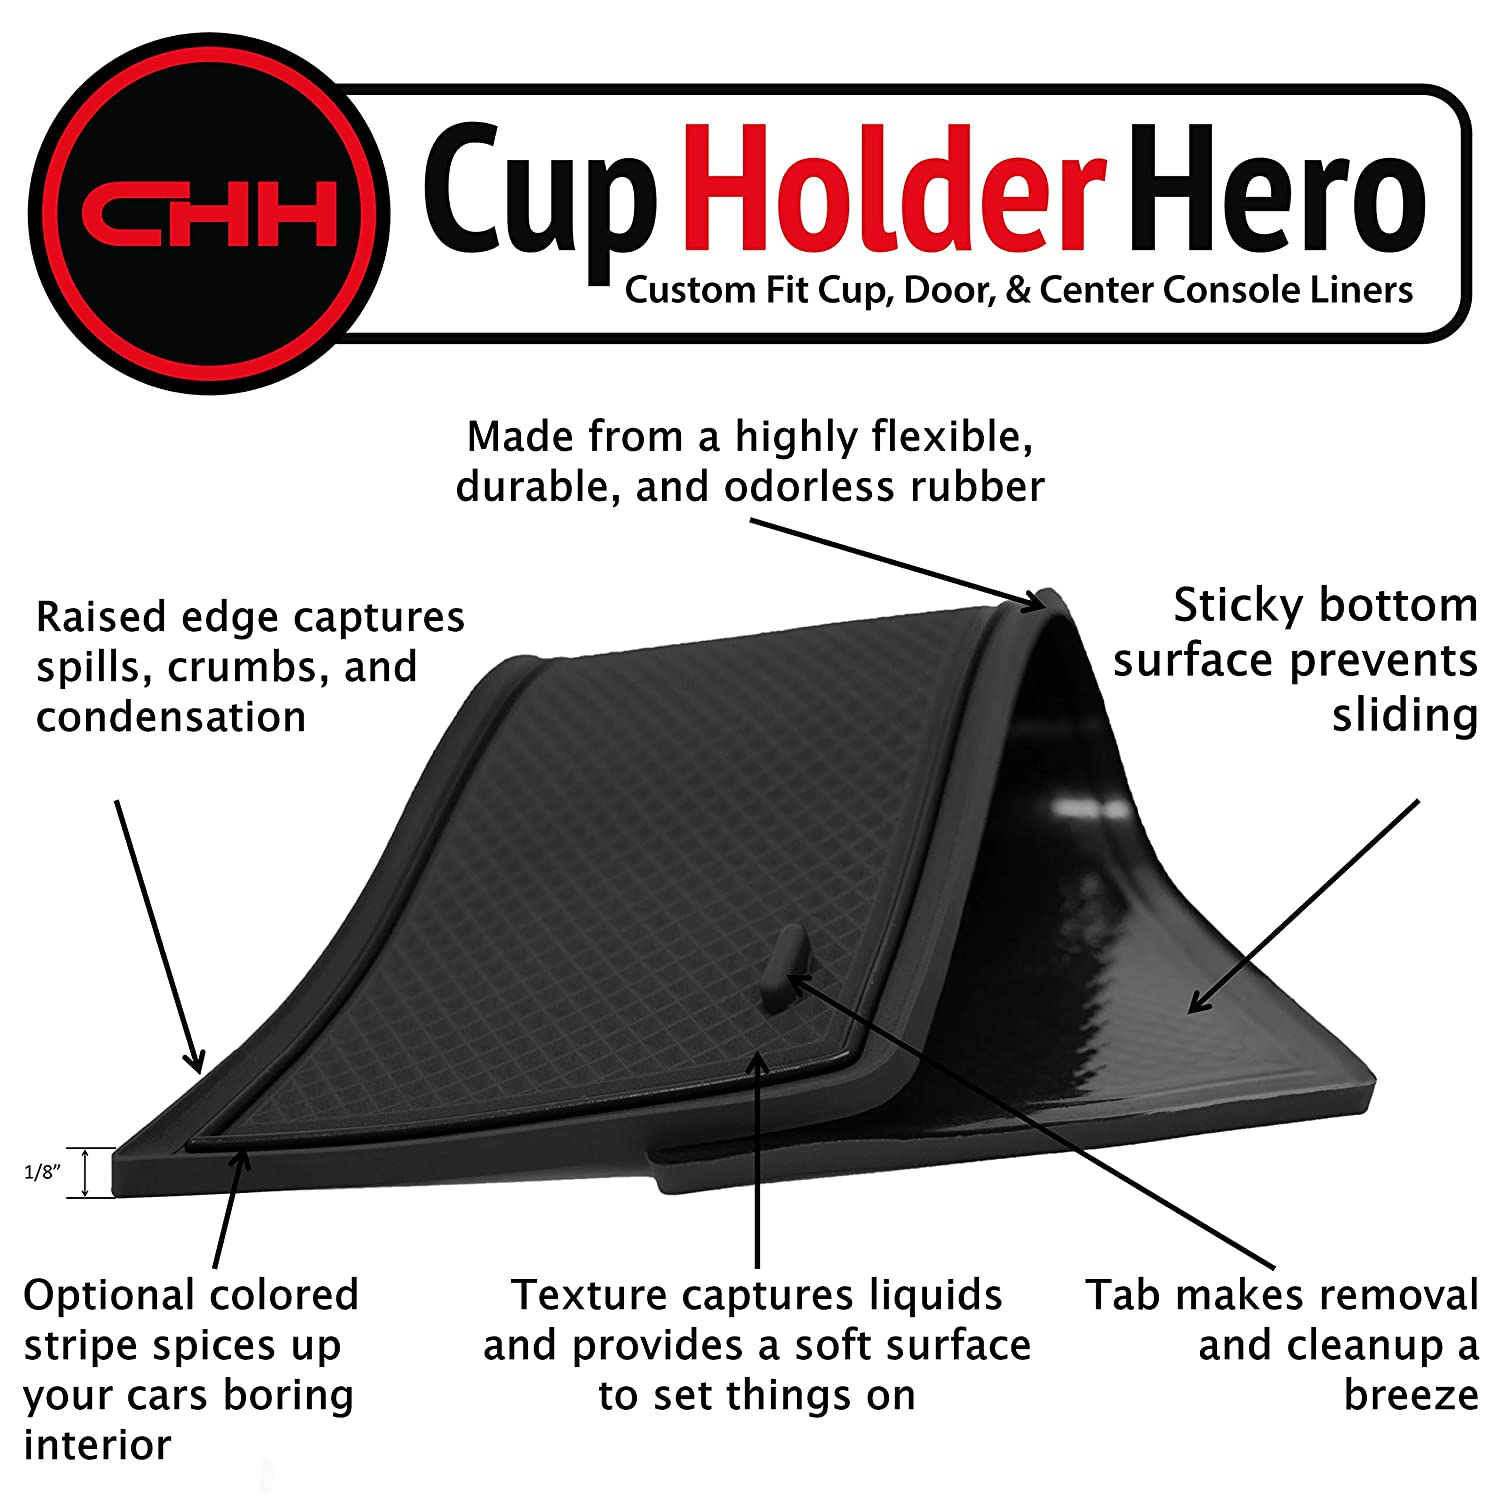 Console Premium Cup Holder Blue Trim CupHolderHero for Chevy Blazer 2019-2020 Custom Liner Accessories and Door Pocket Inserts 19-pc Set